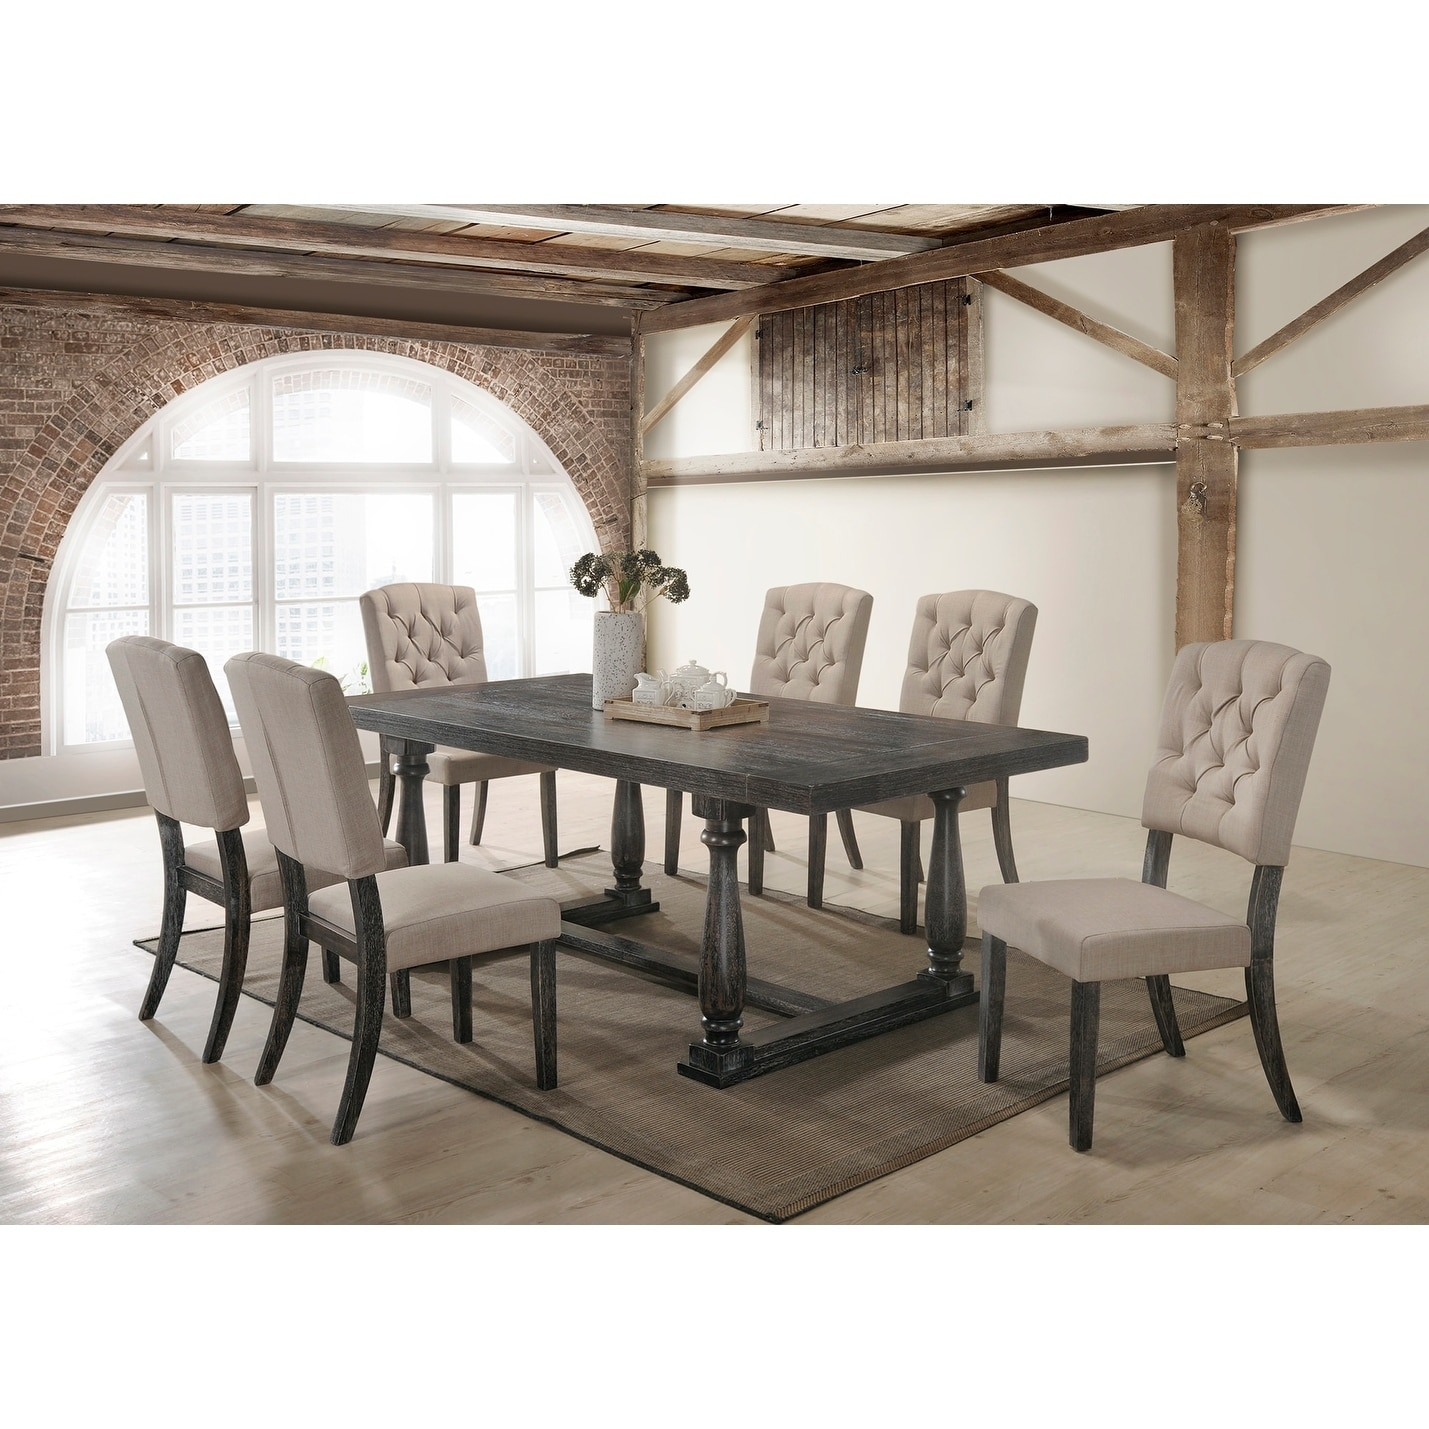 Best Master Furniture Katrina Weathered Oak 7 Pieces Dining Set